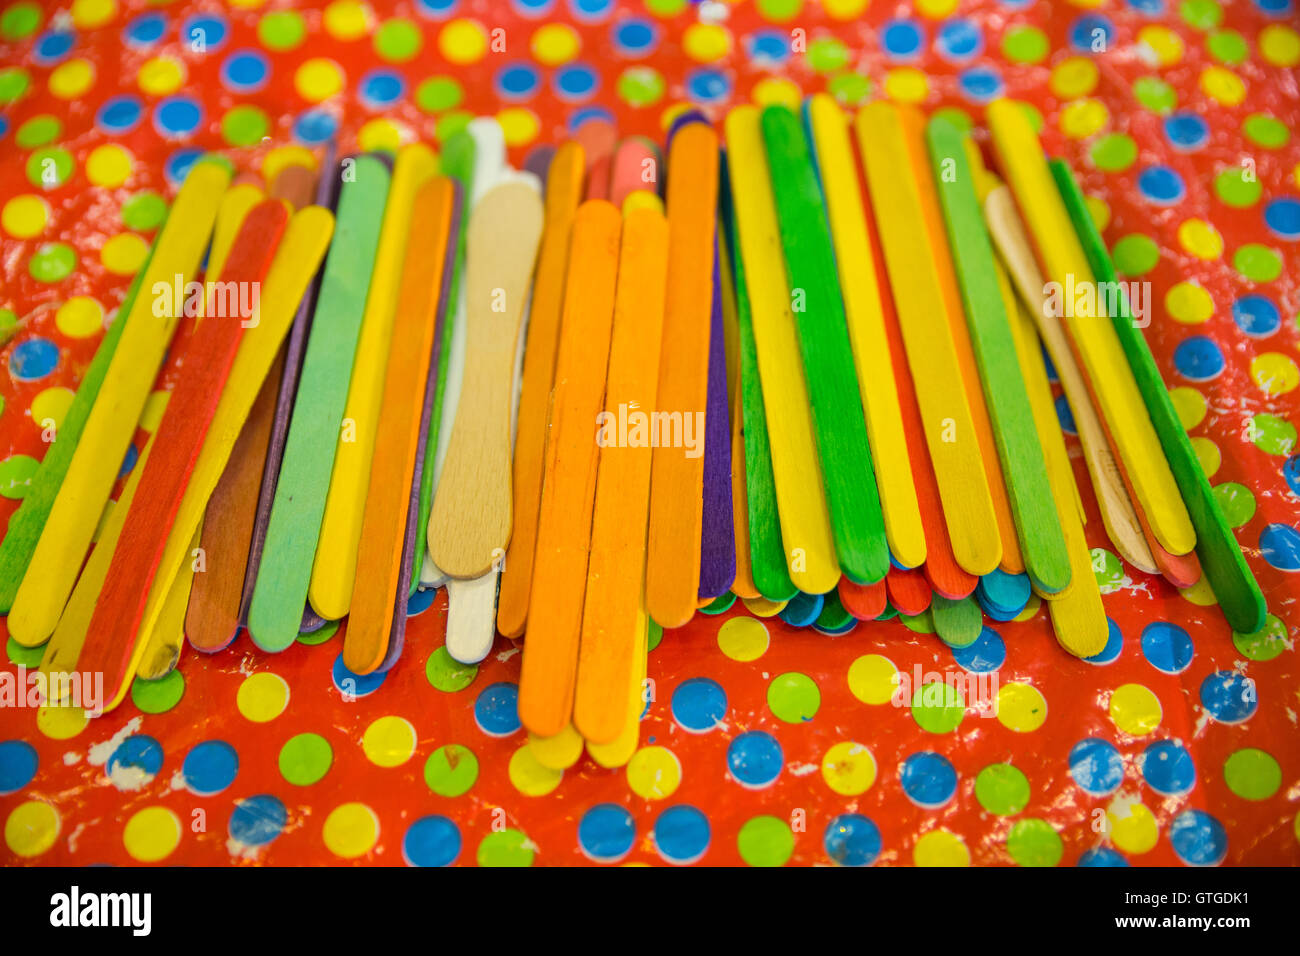 Lots of coloured lollipop sticks lying on a spotted tablecloth. - Stock Image